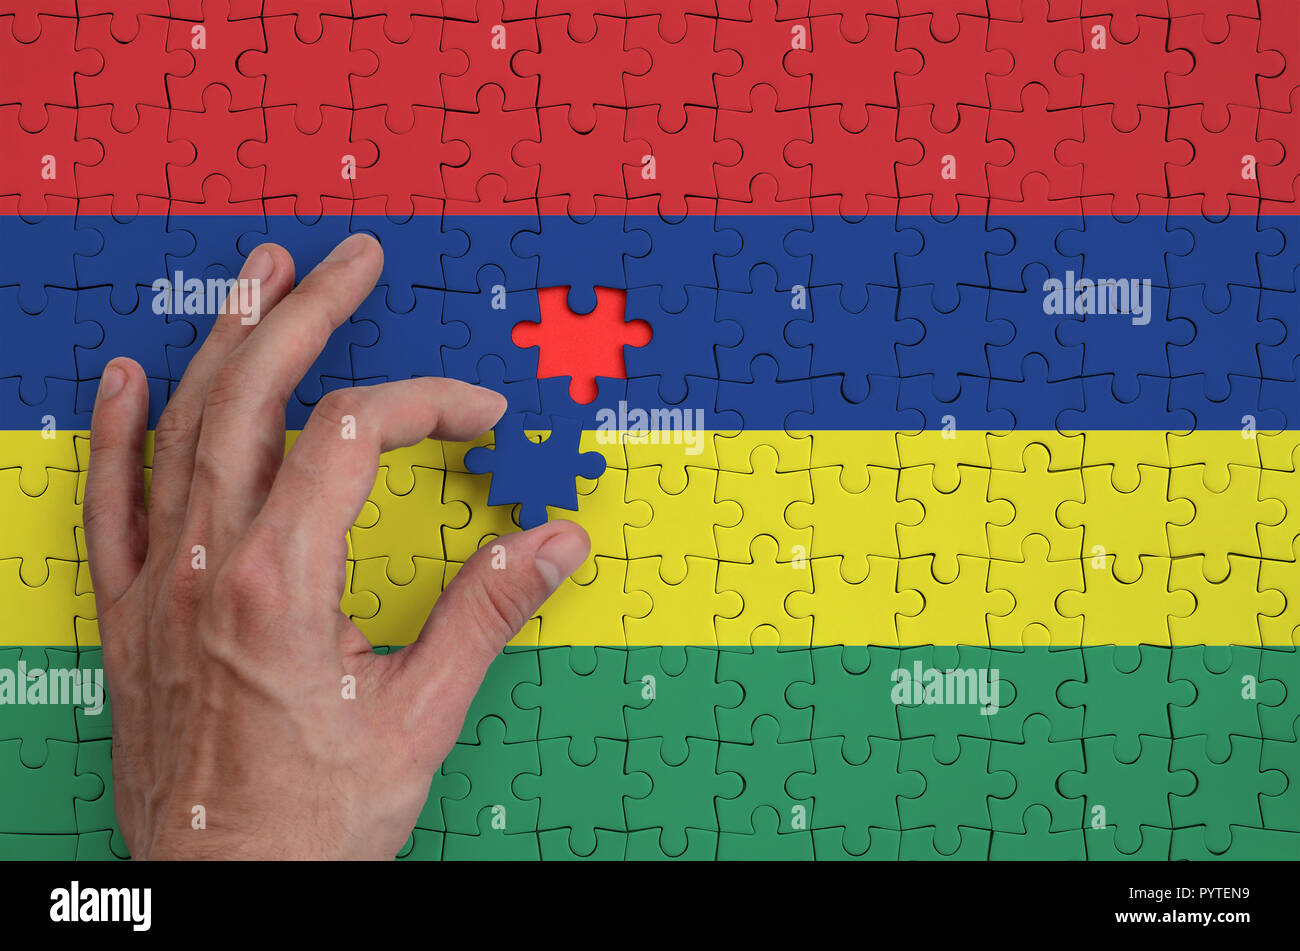 Mauritius flag  is depicted on a puzzle, which the man's hand completes to fold. - Stock Image